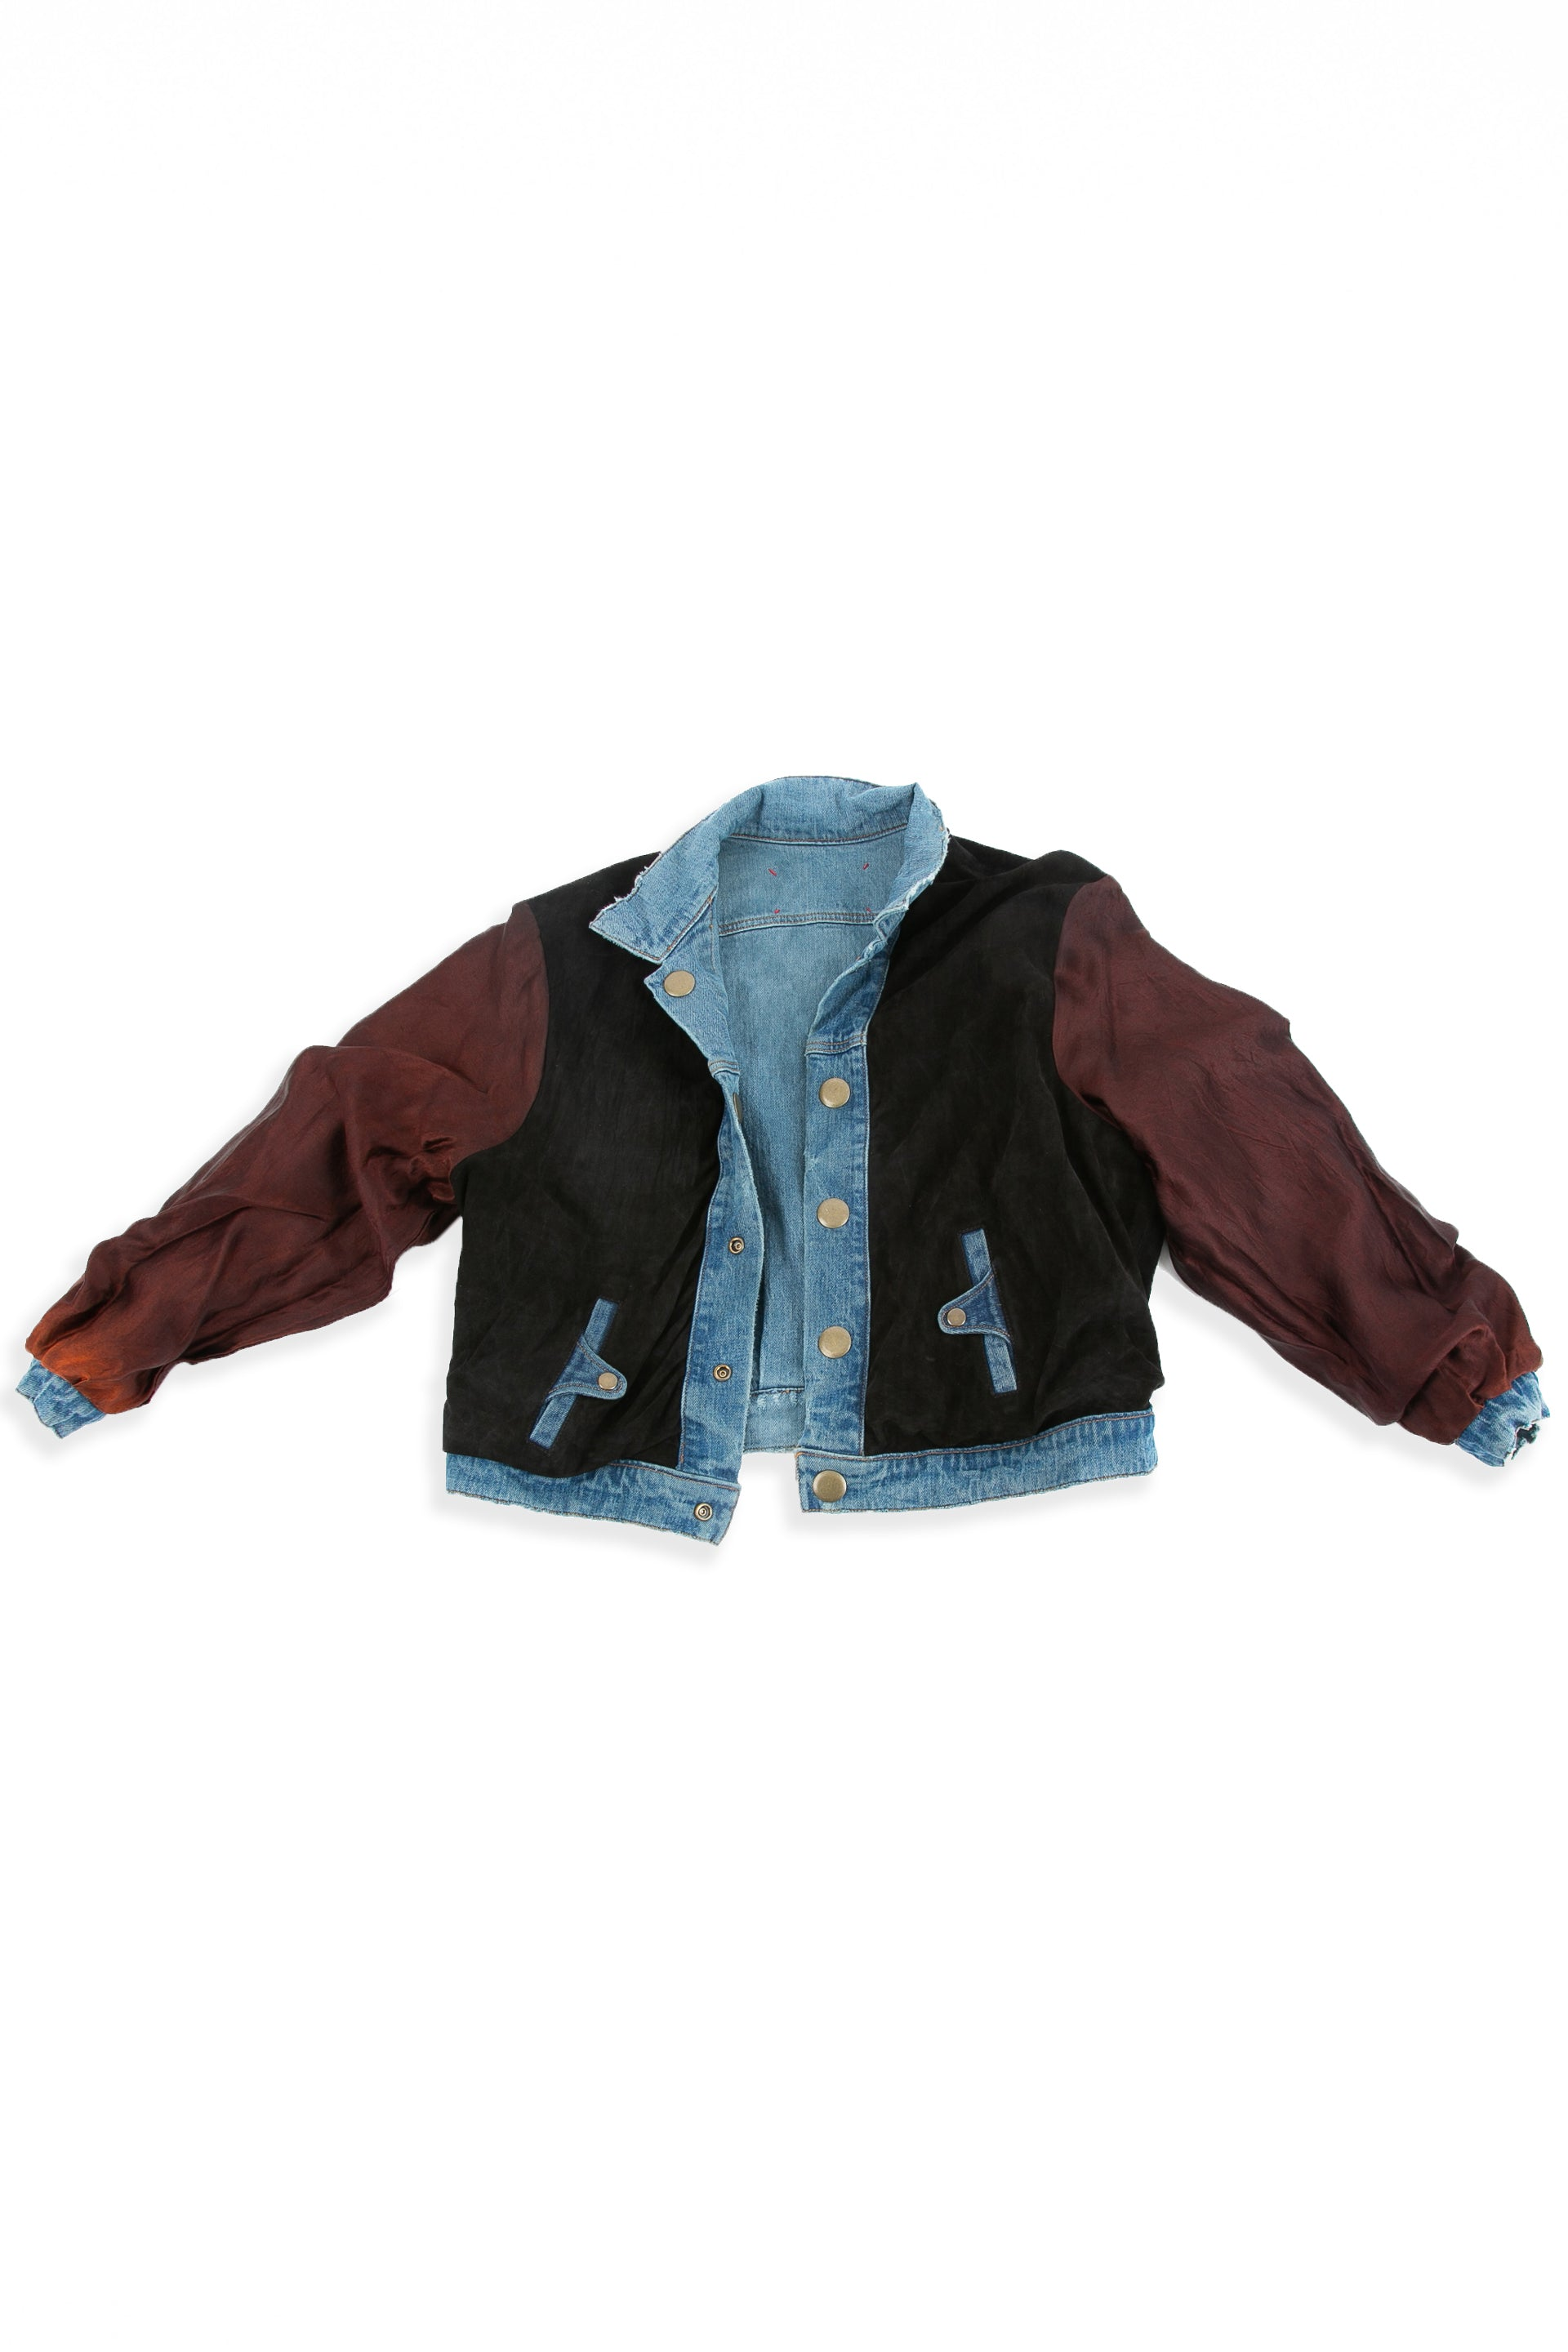 Front of Reversible Suede Bomber jacket